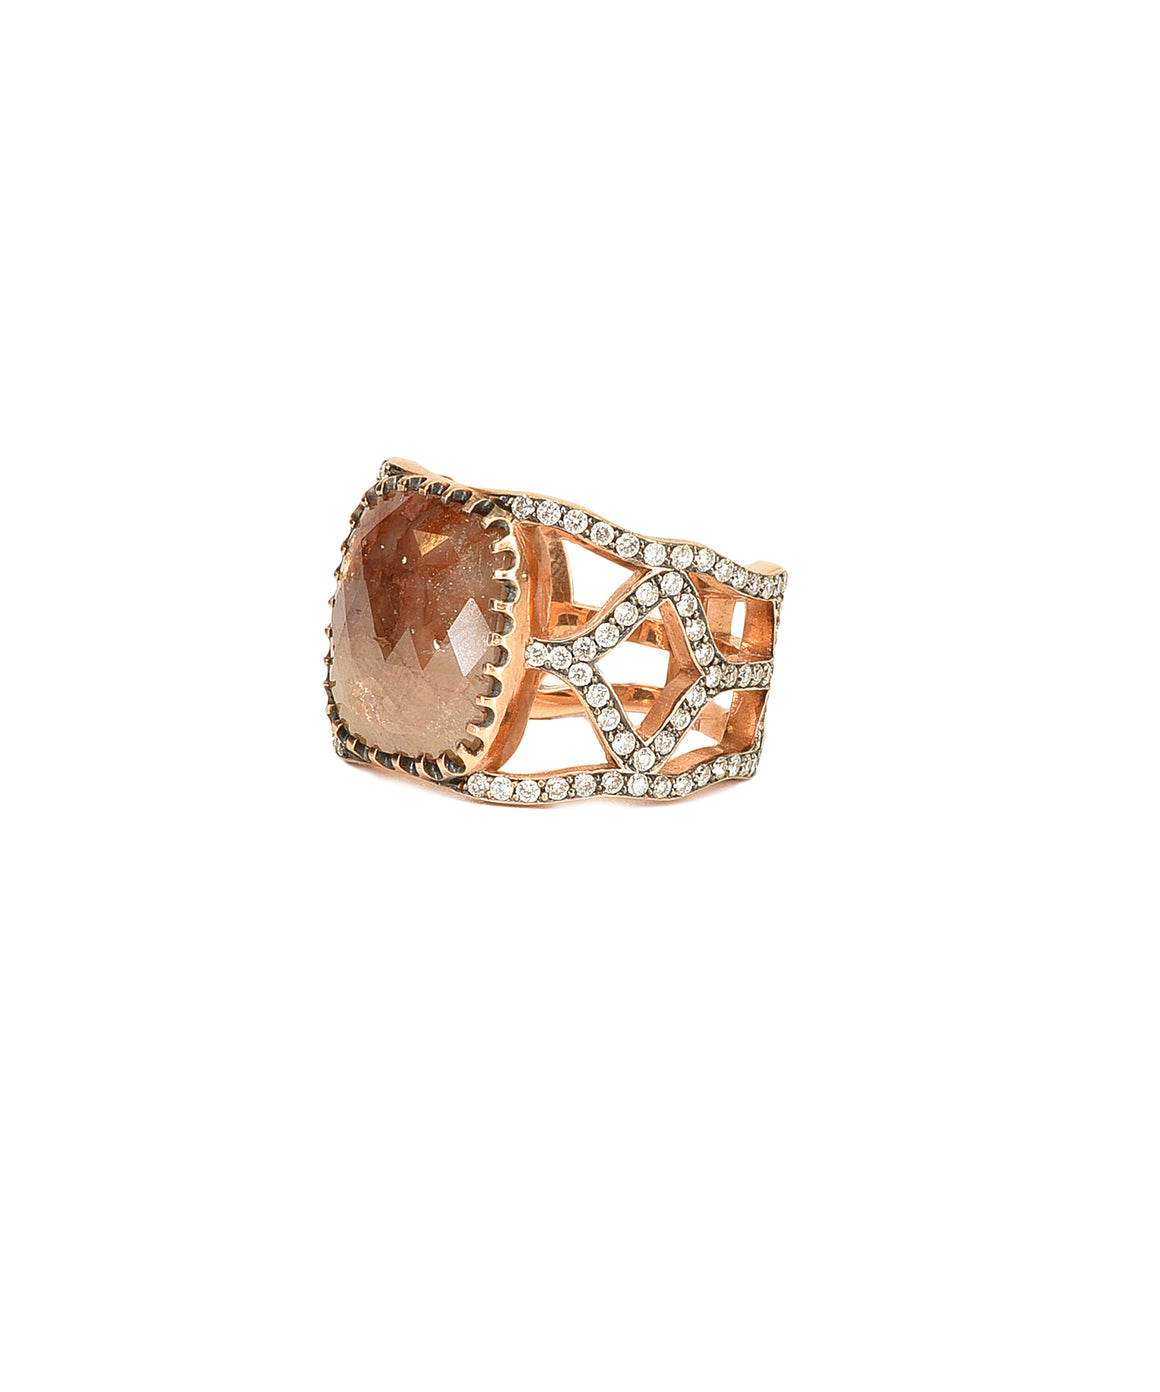 Web ring with rough diamond